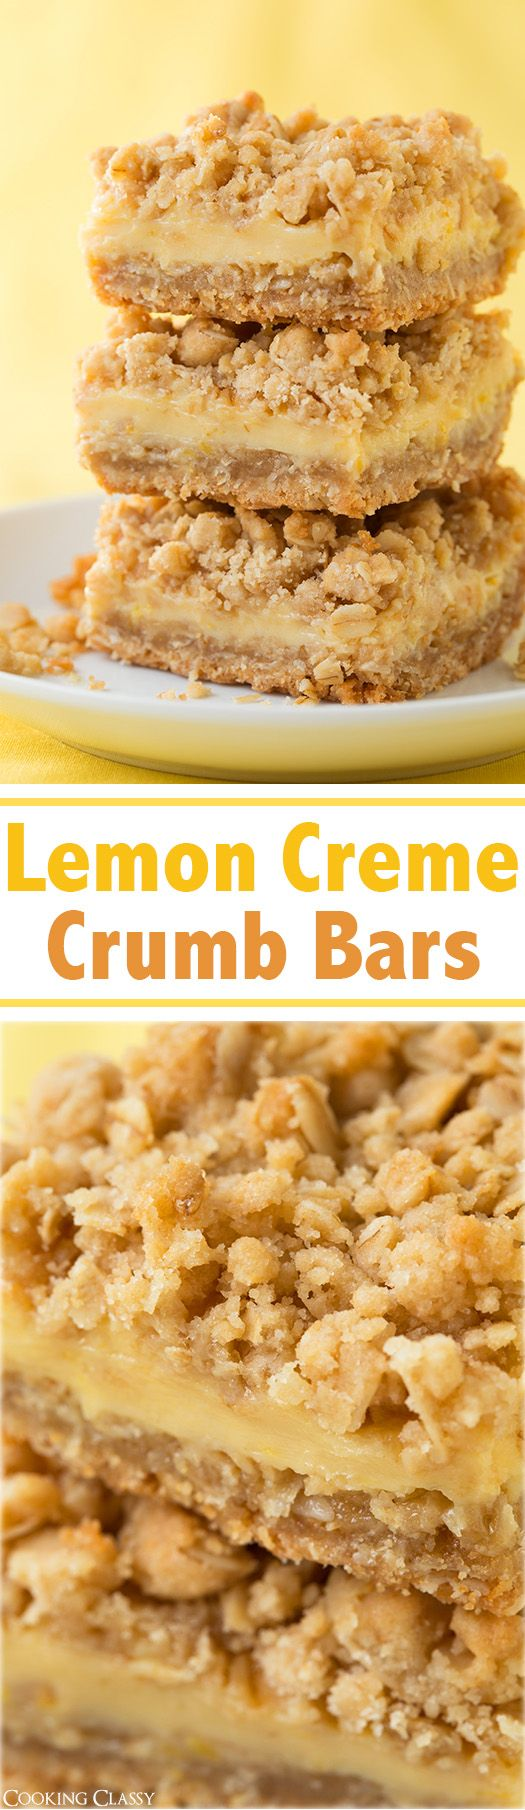 Lemon Creme Crumb Bars - these are probably my favorite bars I've ever had (these and the creme brulee cheesecake bars I made). So amazingly good!!